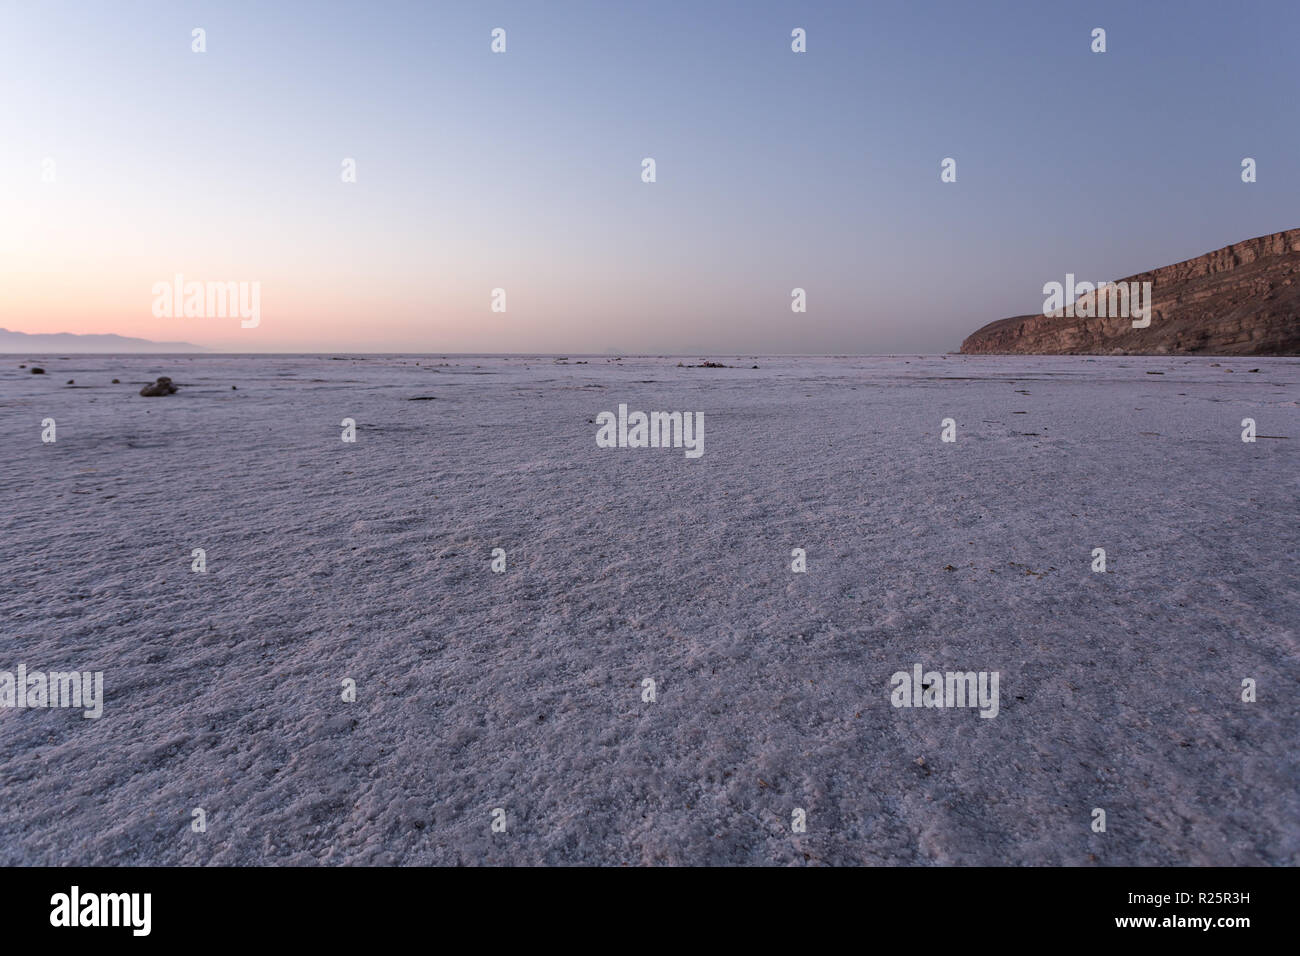 Sunrise over Urmia saltwater lake in North-West region of Iran. - Stock Image